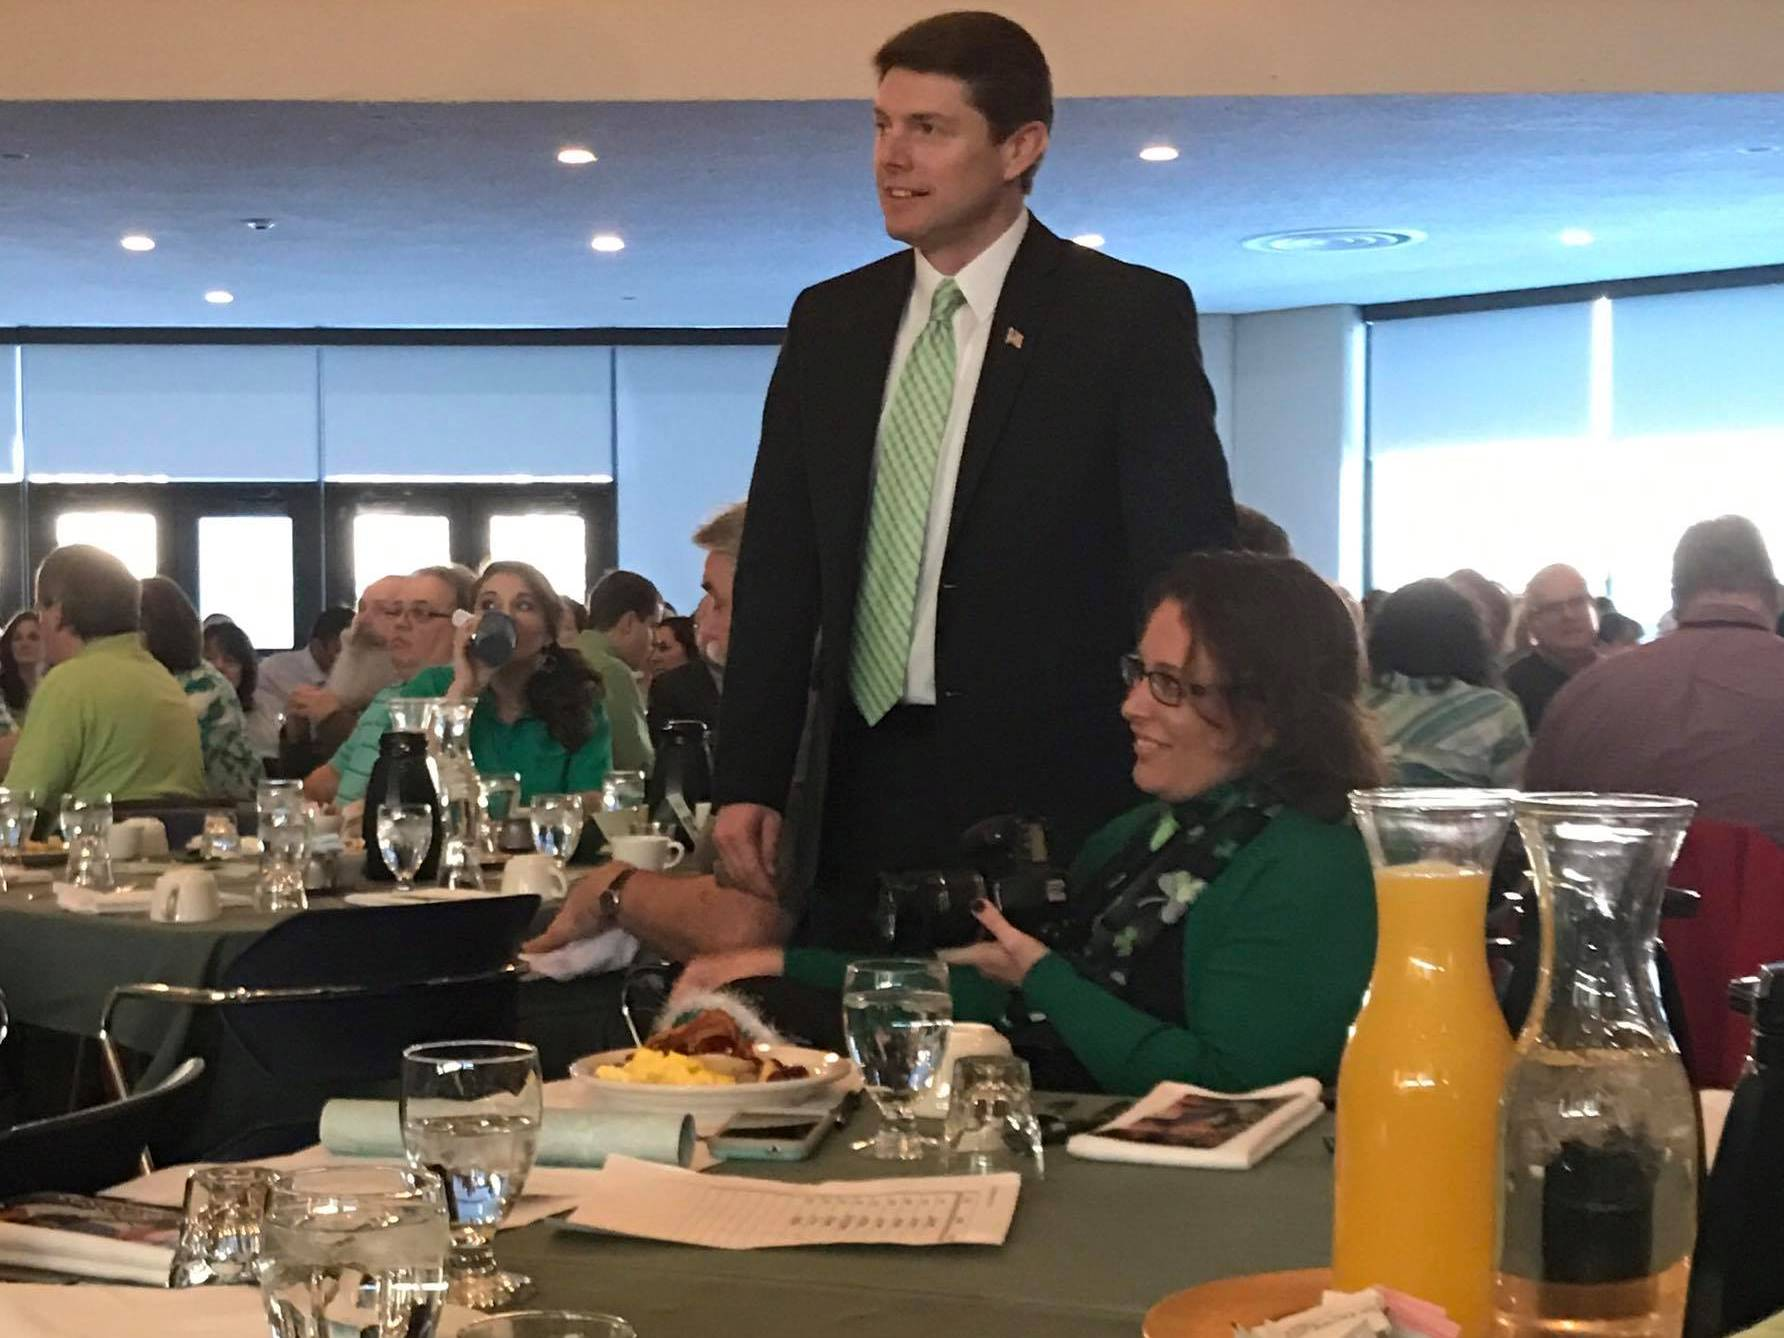 In March 2017, Assemblyman Jones attended the North Country Chamber of Commerce's 59th Annual St. Patrick's Day Breakfast.